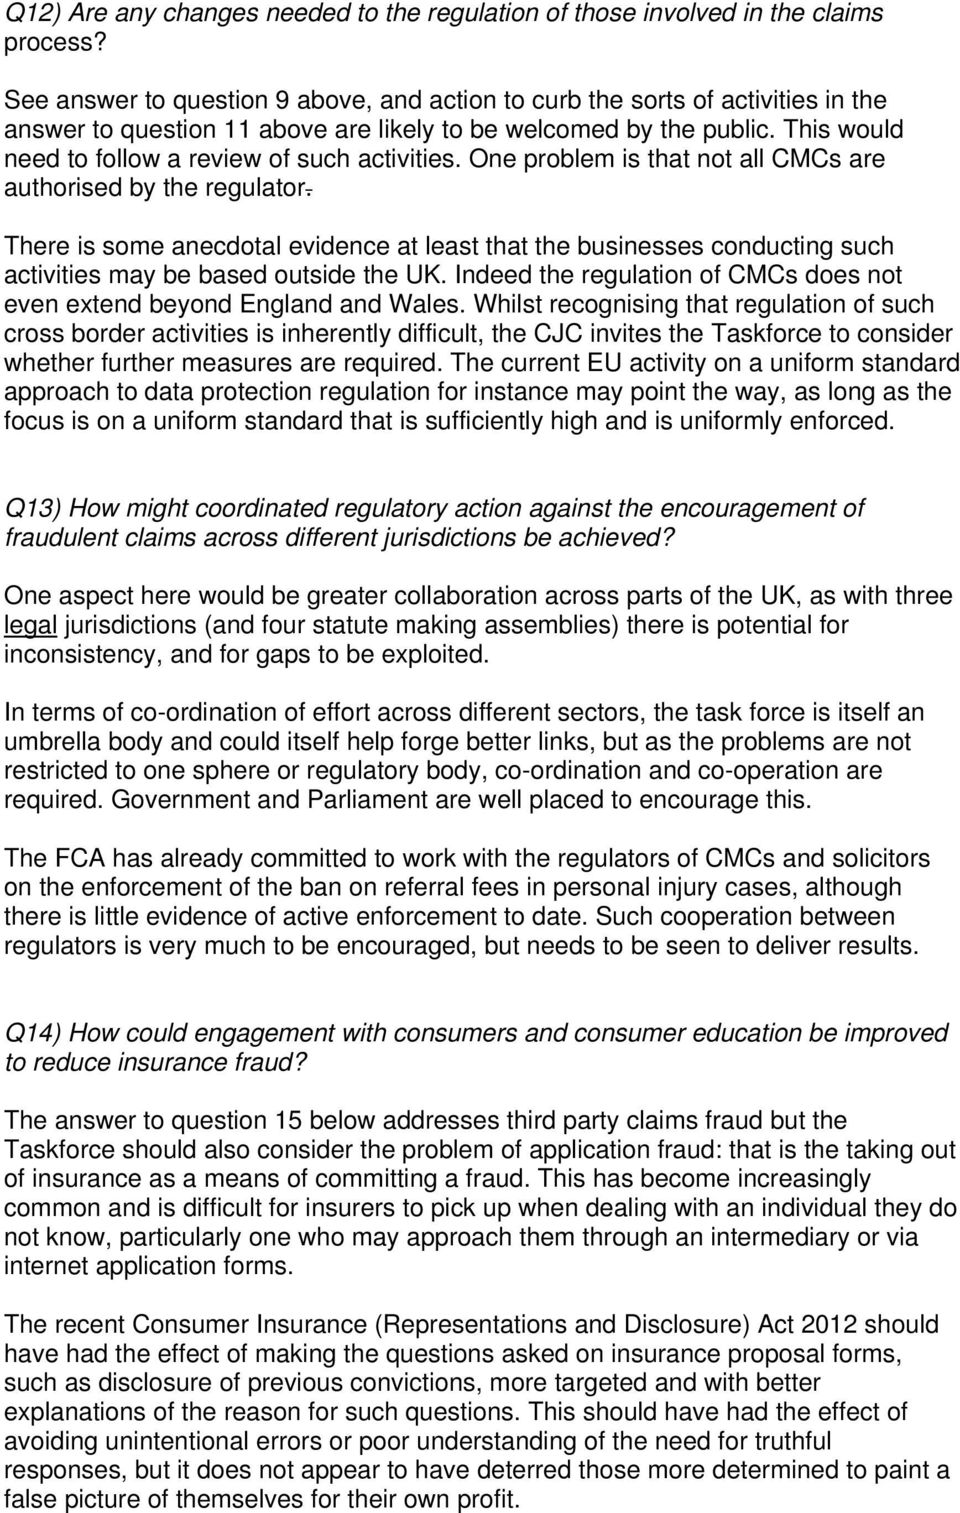 This would need to follow a review of such activities. One problem is that not all CMCs are authorised by the regulator.